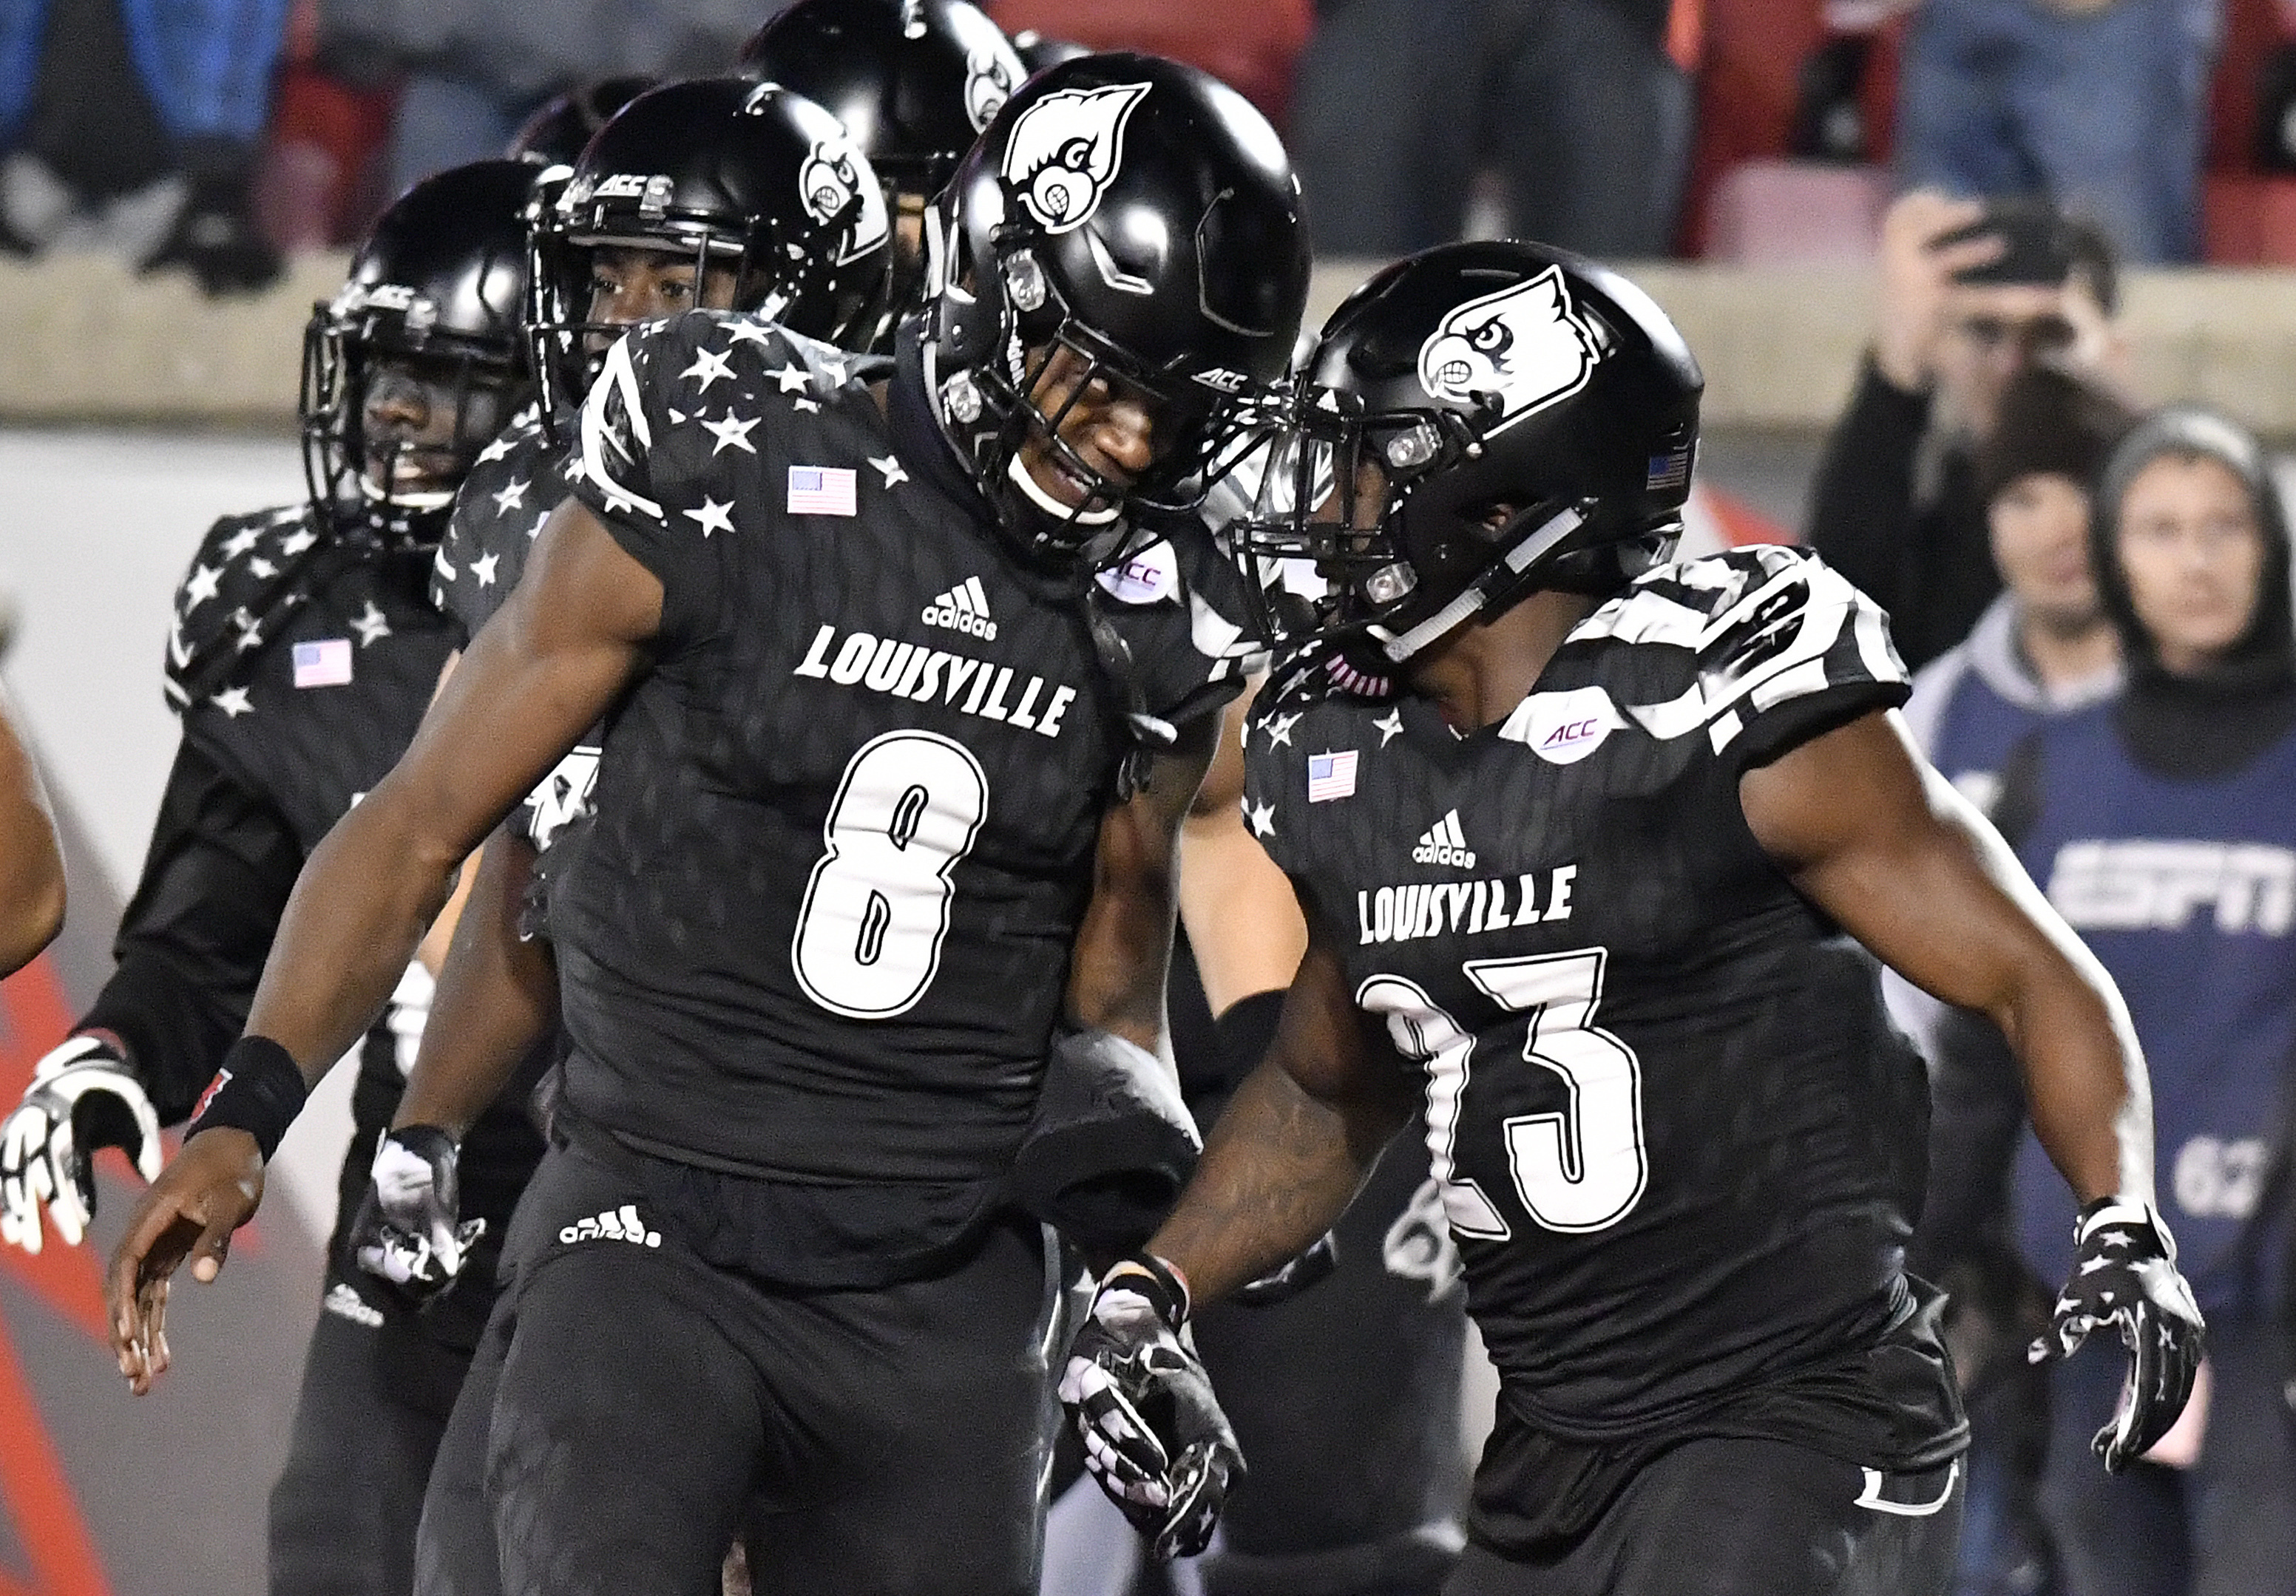 Louisville quarterback Lamar Jackson (8) and Brandon Radcliff (23) celebrate a touchdown during the second half of an NCAA college football game against Wake Forest, Saturday, Nov. 12, 2016, in Louisville, Ky. Louisville won 44-12. (AP Photo/Timothy D. Ea